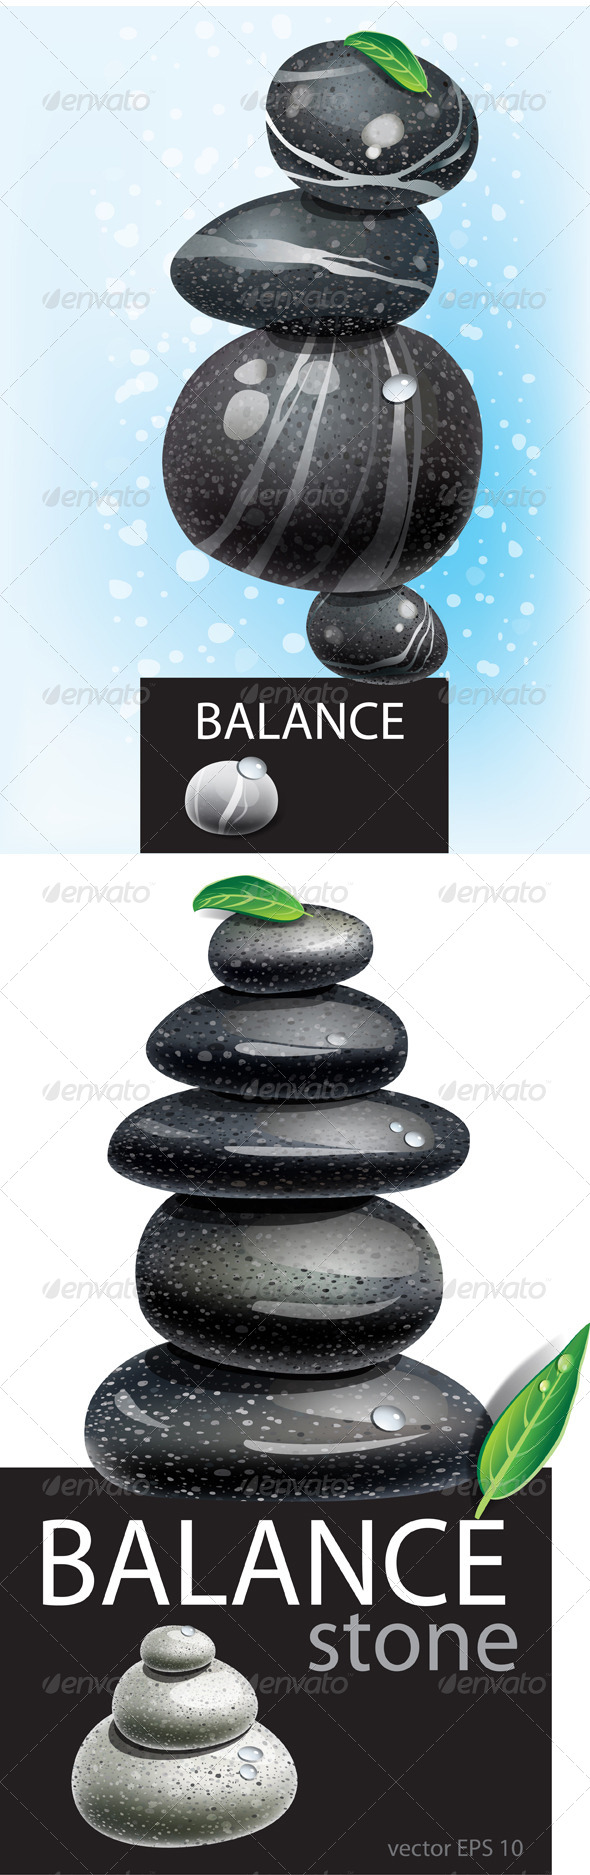 GraphicRiver Balanced Concept 7651649